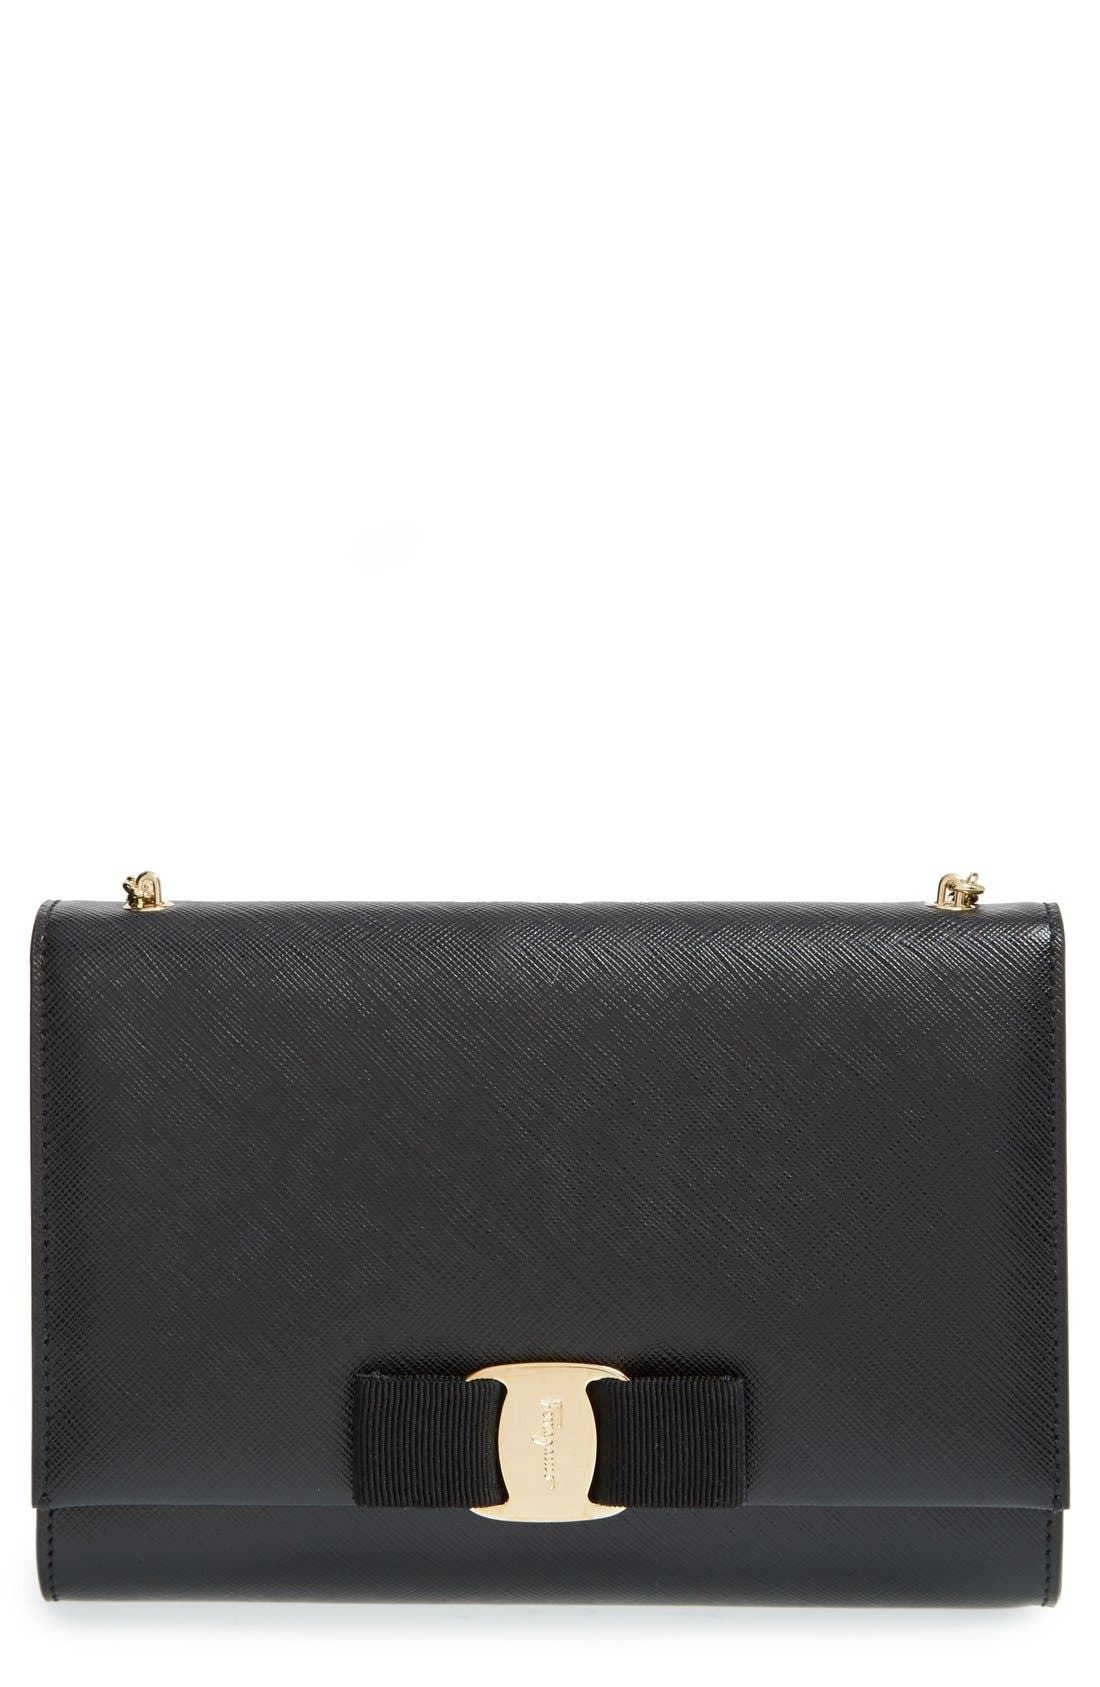 Salvatore Ferragamo 'Miss Vara' Clutch